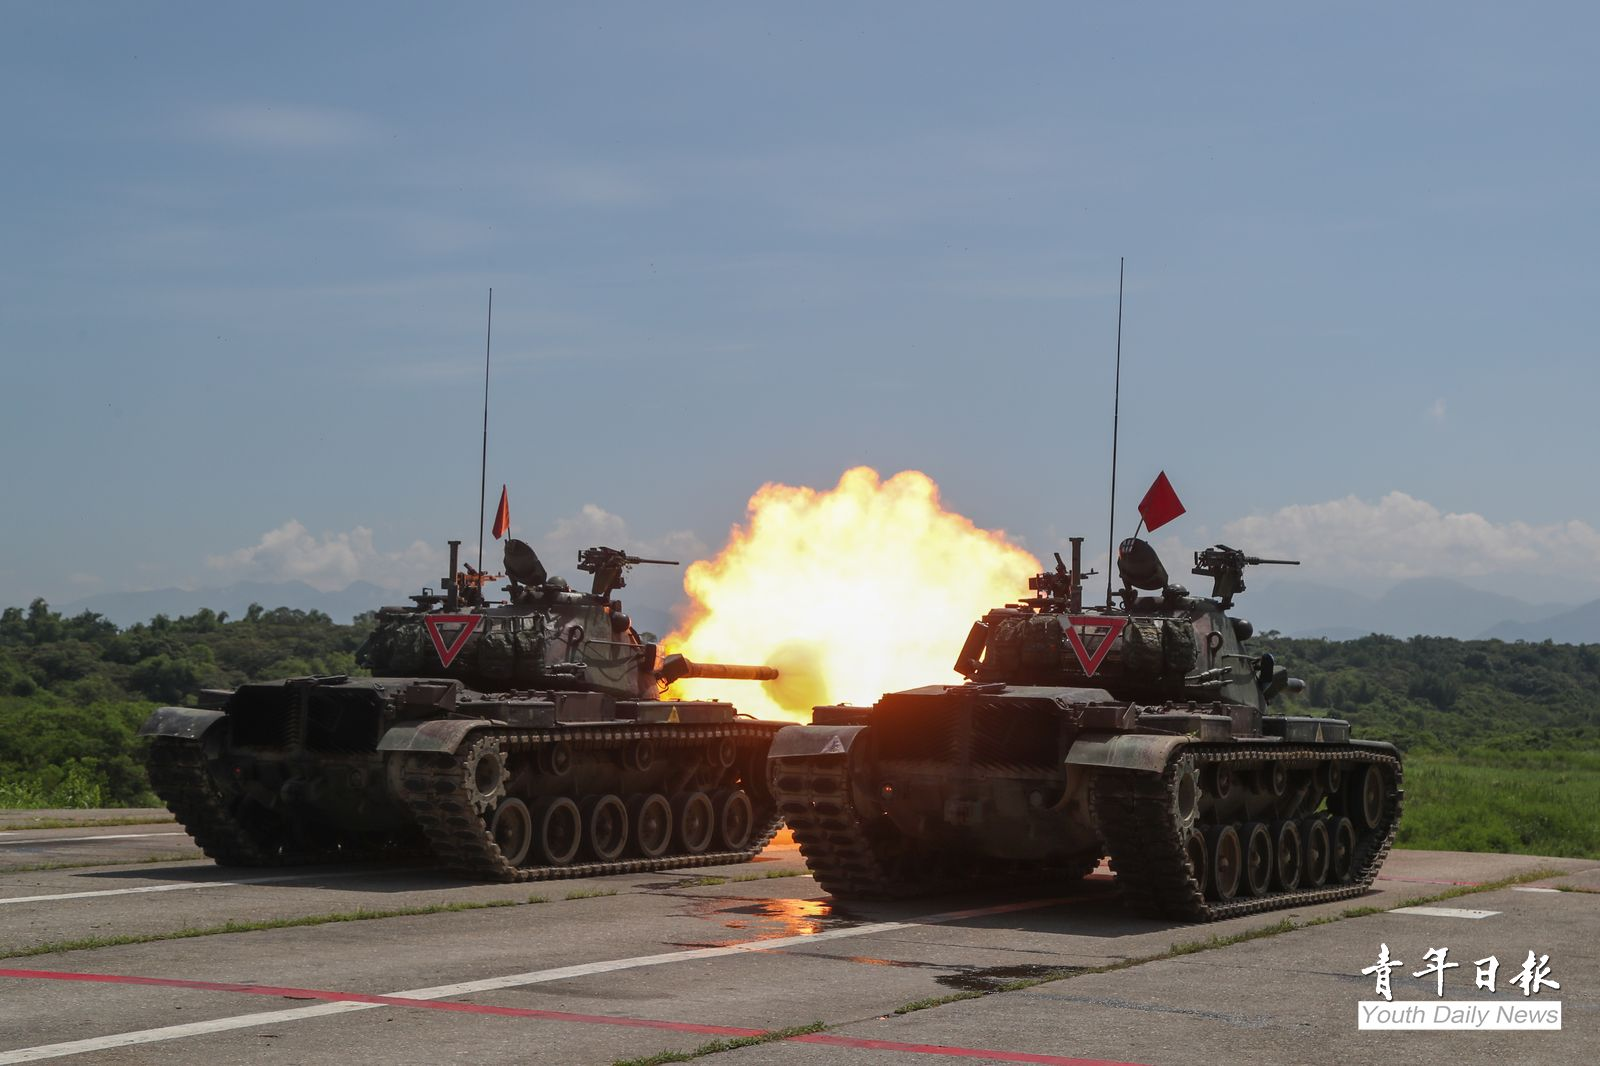 564th Armor Brigade's Combined Arms Battalion Demonstrated Training Outcome in Its Readiness Test